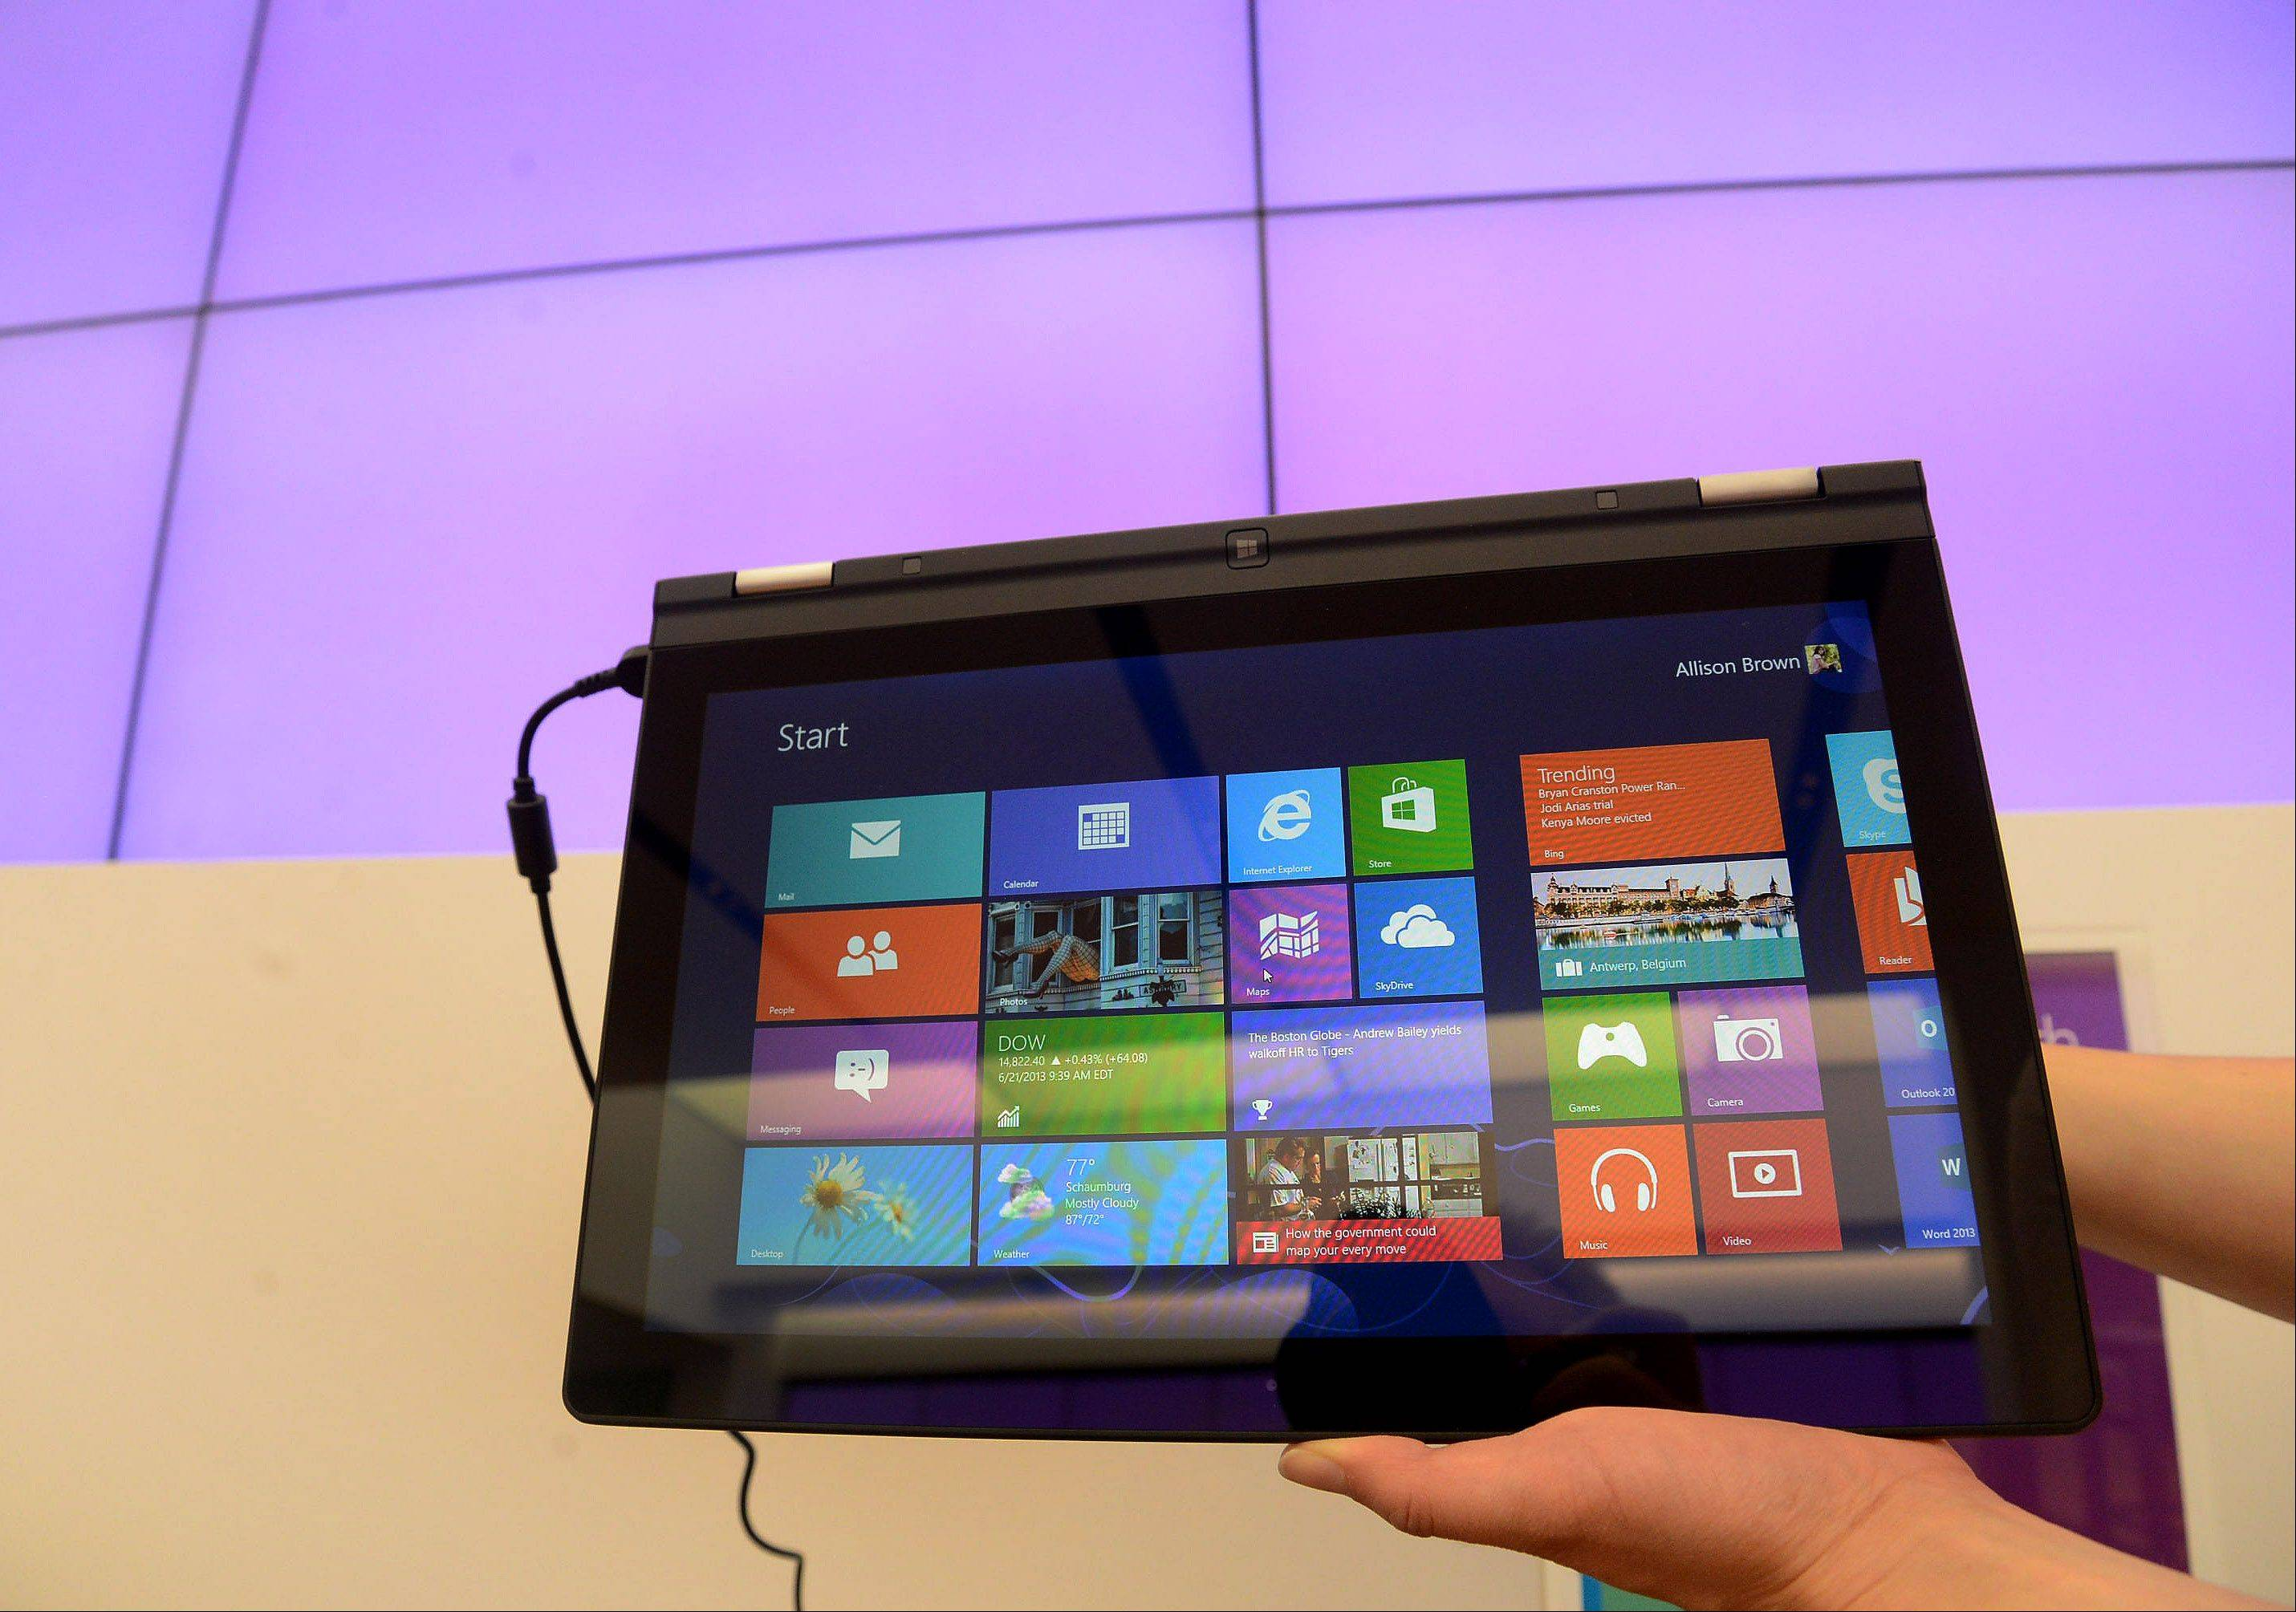 Lucretia Taylor, public relations assistant, displays the Lenovo IdeaPad Yoga i5 with Windows 8 operating system.